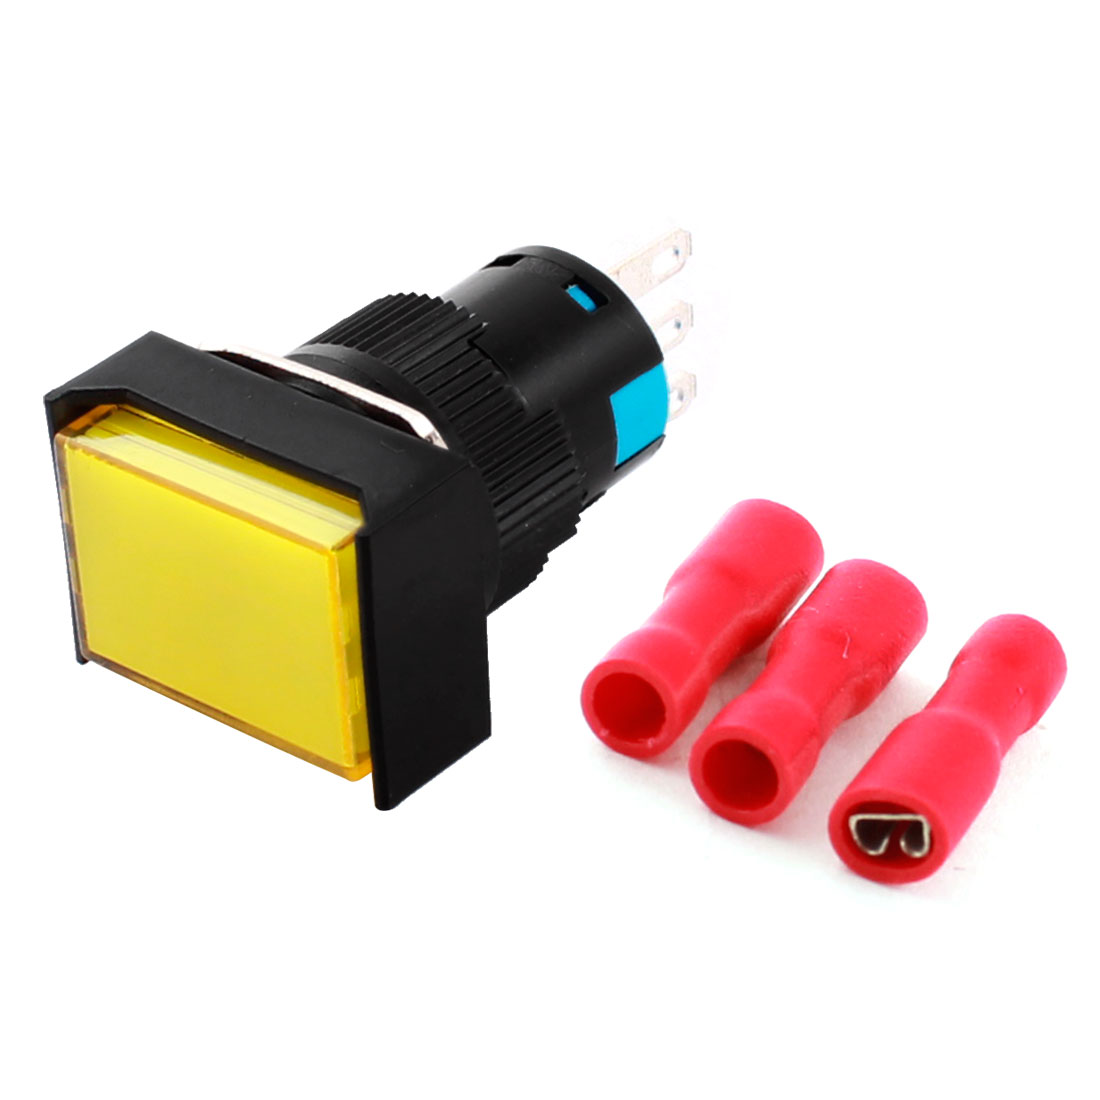 AC 250V 5A Yellow Momentary Rectangle Push Button Switch + Insulated Terminal